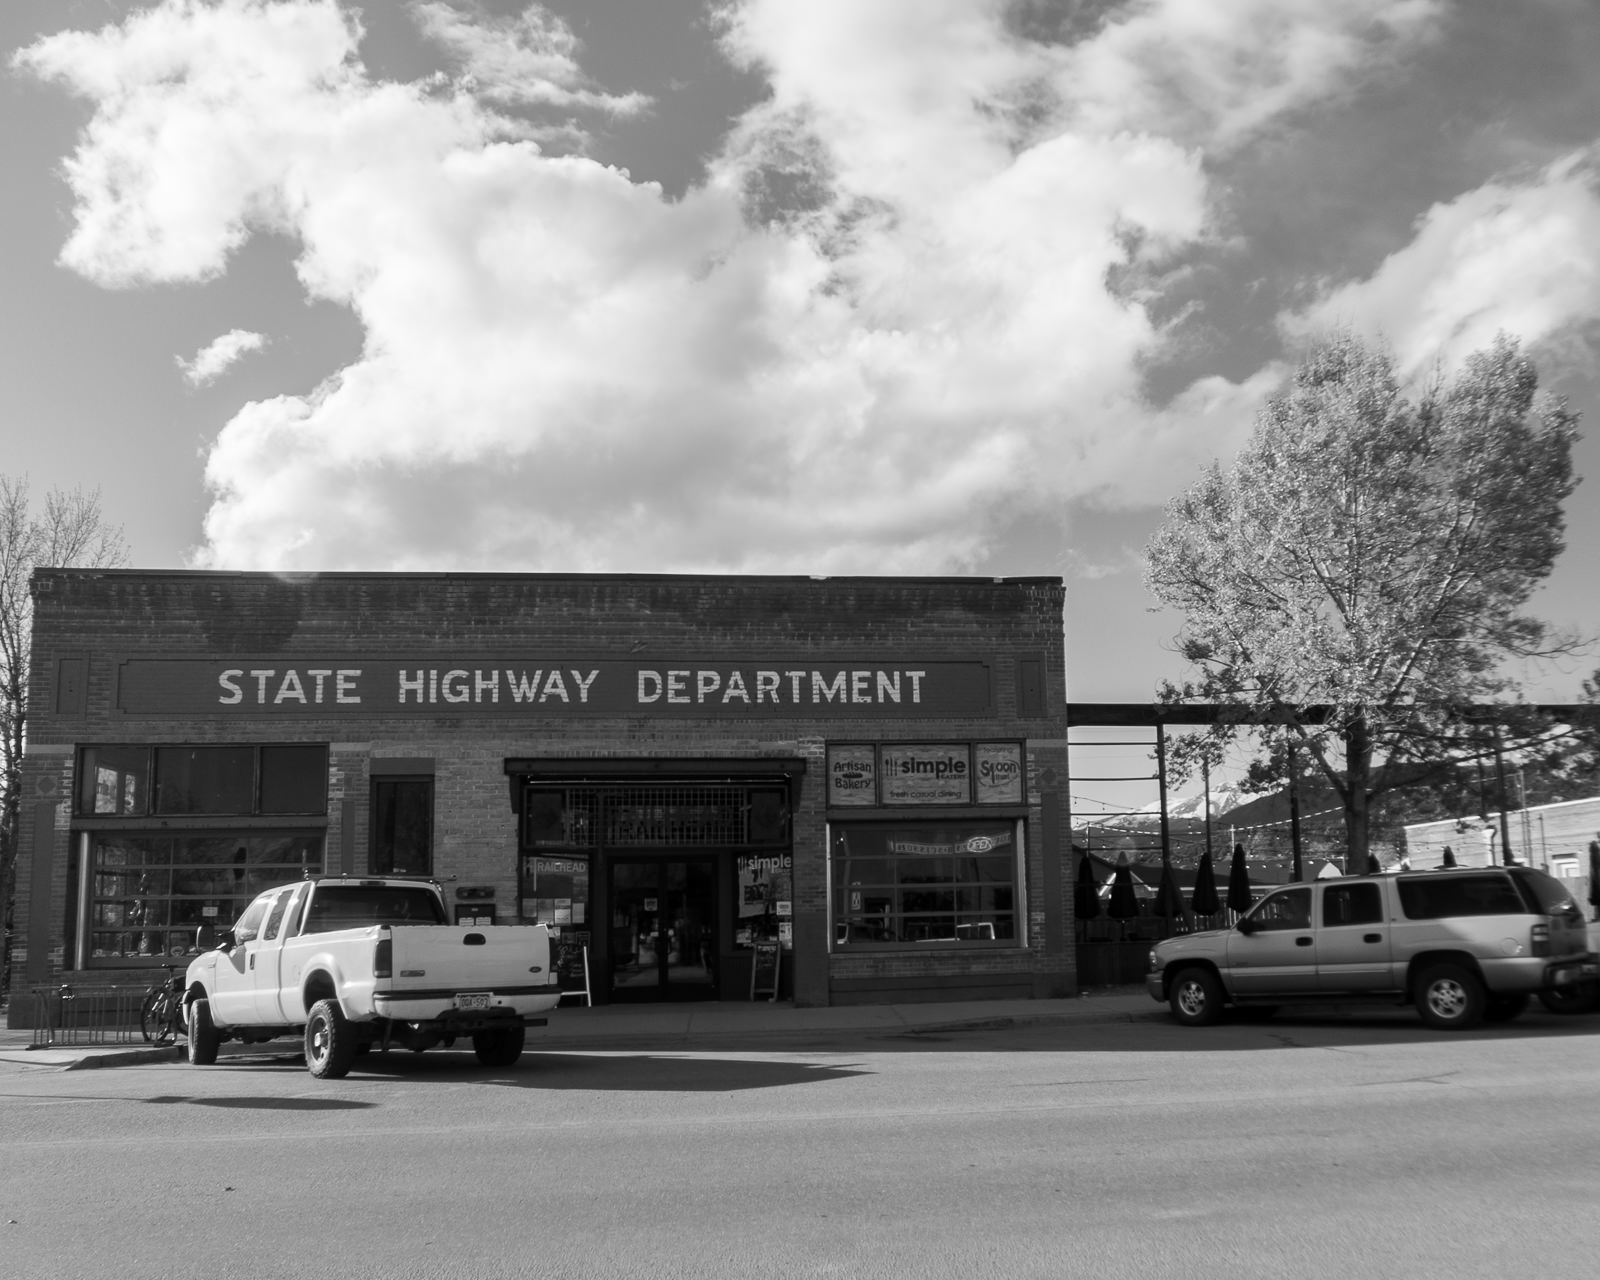 Day 153- 365 Day B&W Photo Challenge - The Historic State Highway Department Building in Buena Vista, Colorado - Google Pixel 3, Moment Tele Lens - Acros R Film Simulation